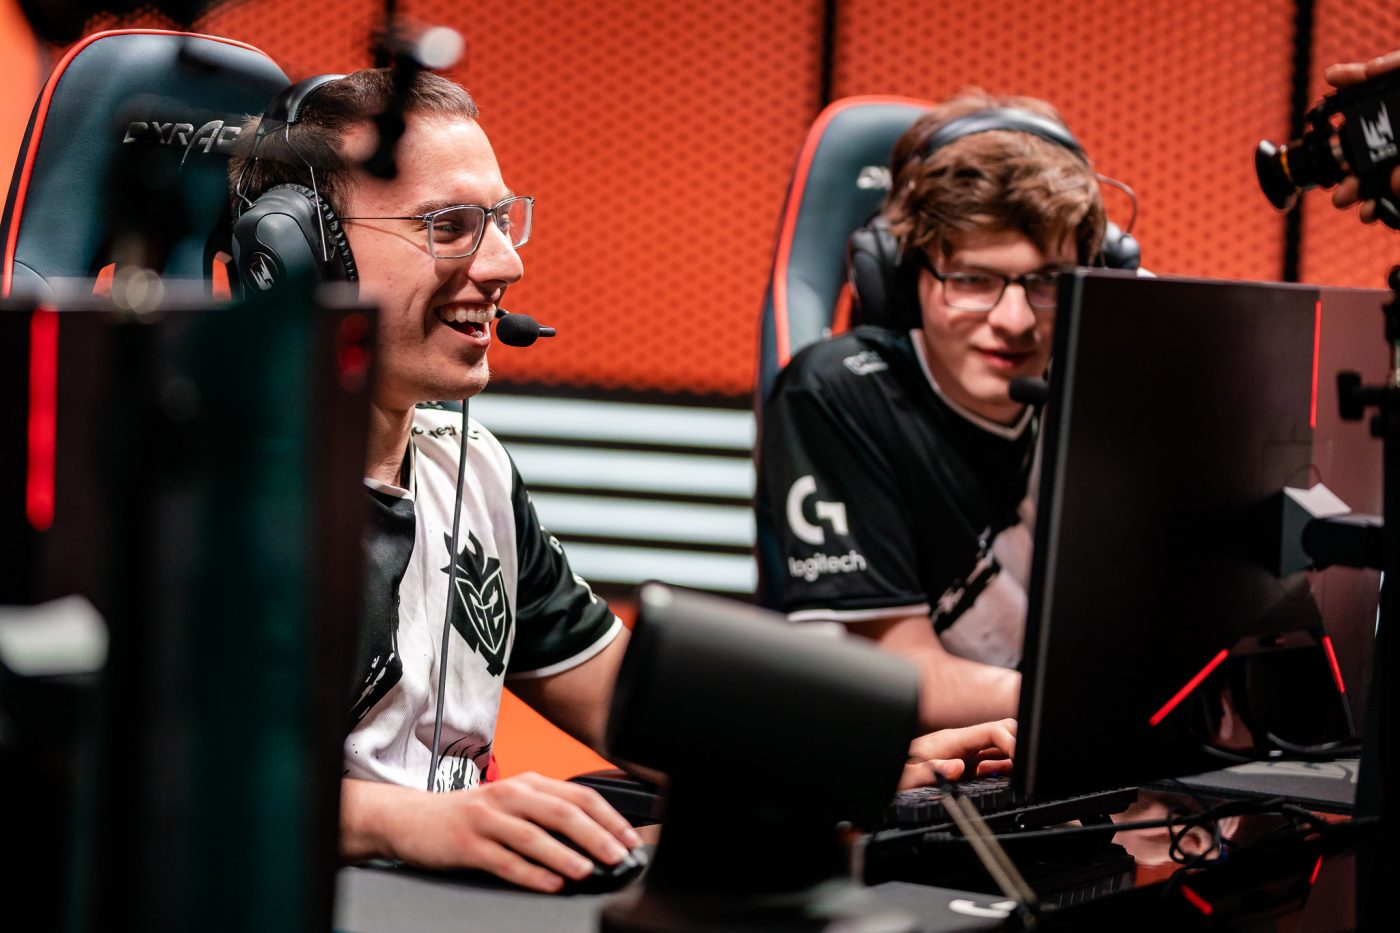 LEC G2 Perkz and Mikyx